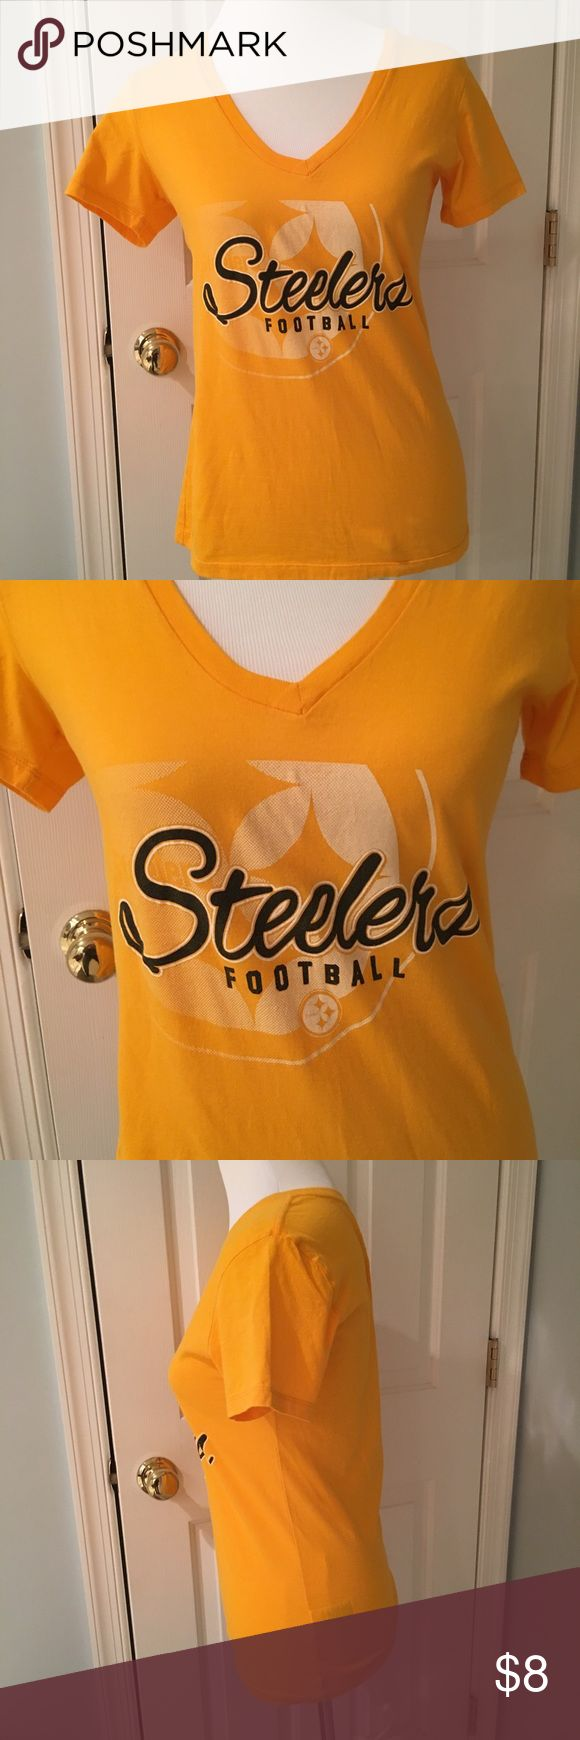 Steelers v-neck tee Steelers NFL team apparel tee shirt worn only a couple times. No pilling, stains, rips. NFL Team Apparel Tops Tees - Short Sleeve